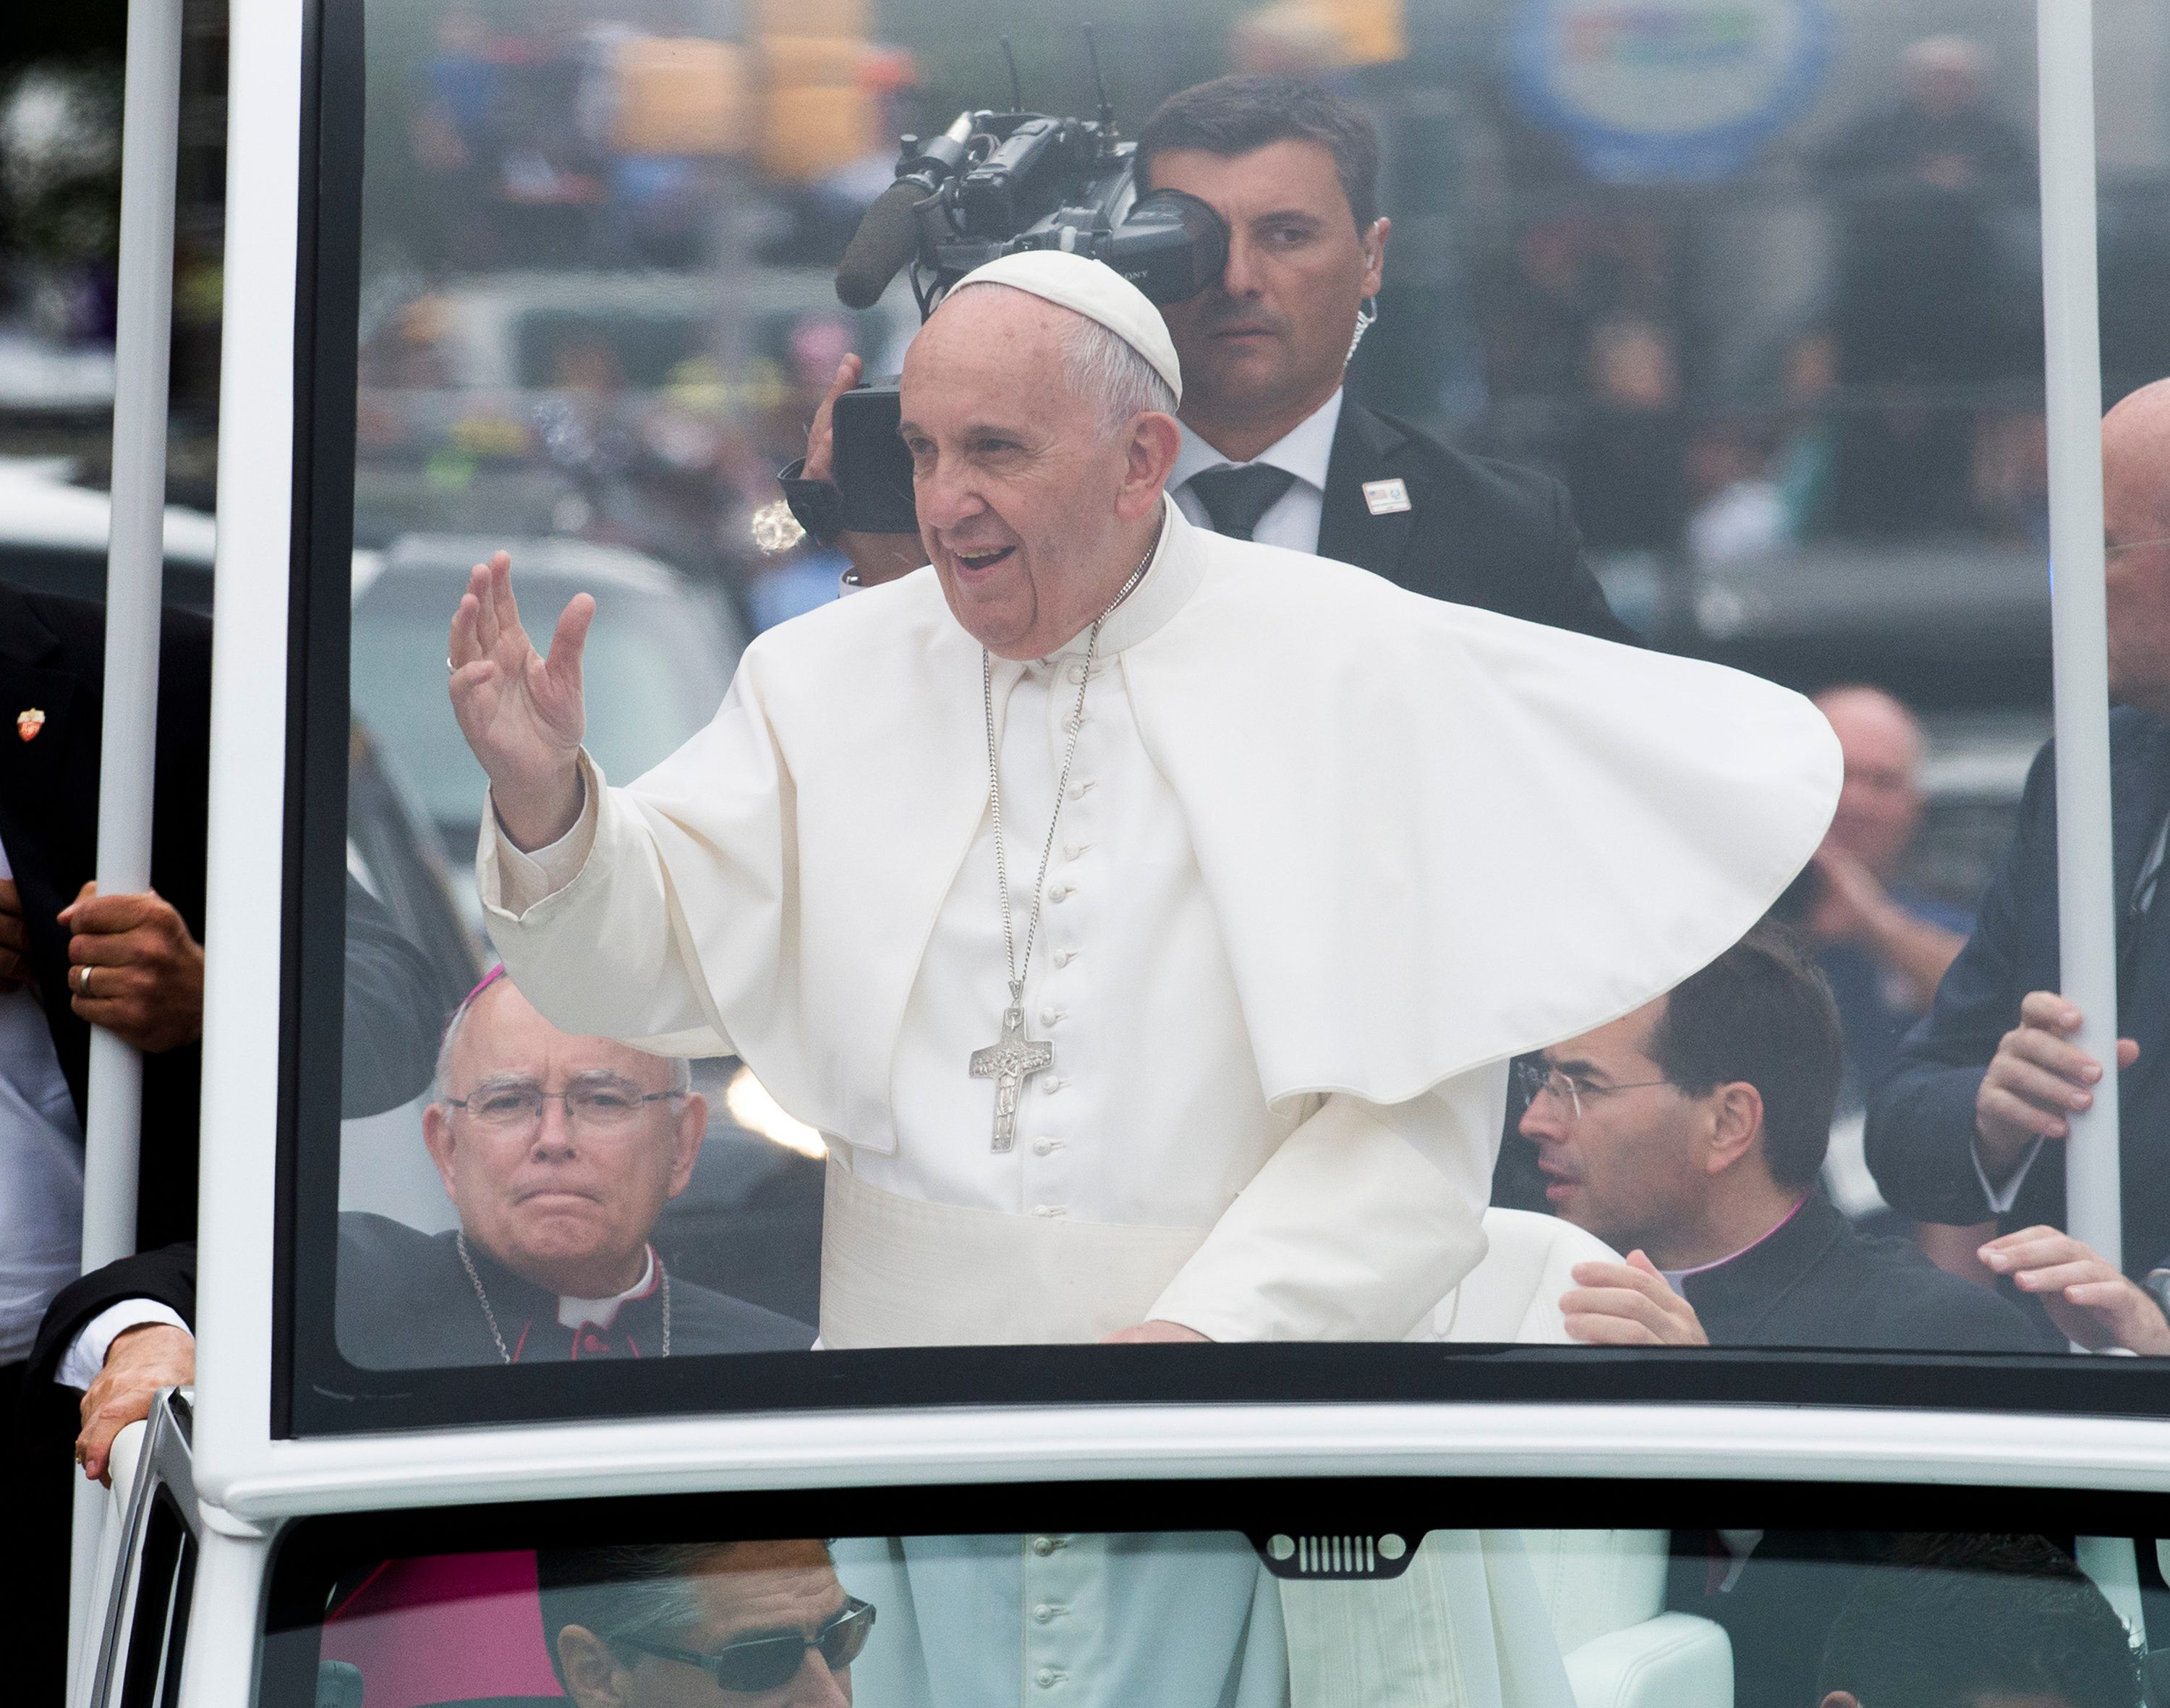 Pope Francis waves to pilgrims on the Benjamin Franklin Parkway in Philadelphia on Sunday, Sept. 27, 2015. (Clem Murray/Philadelphia Inquirer/TNS via Getty Images)